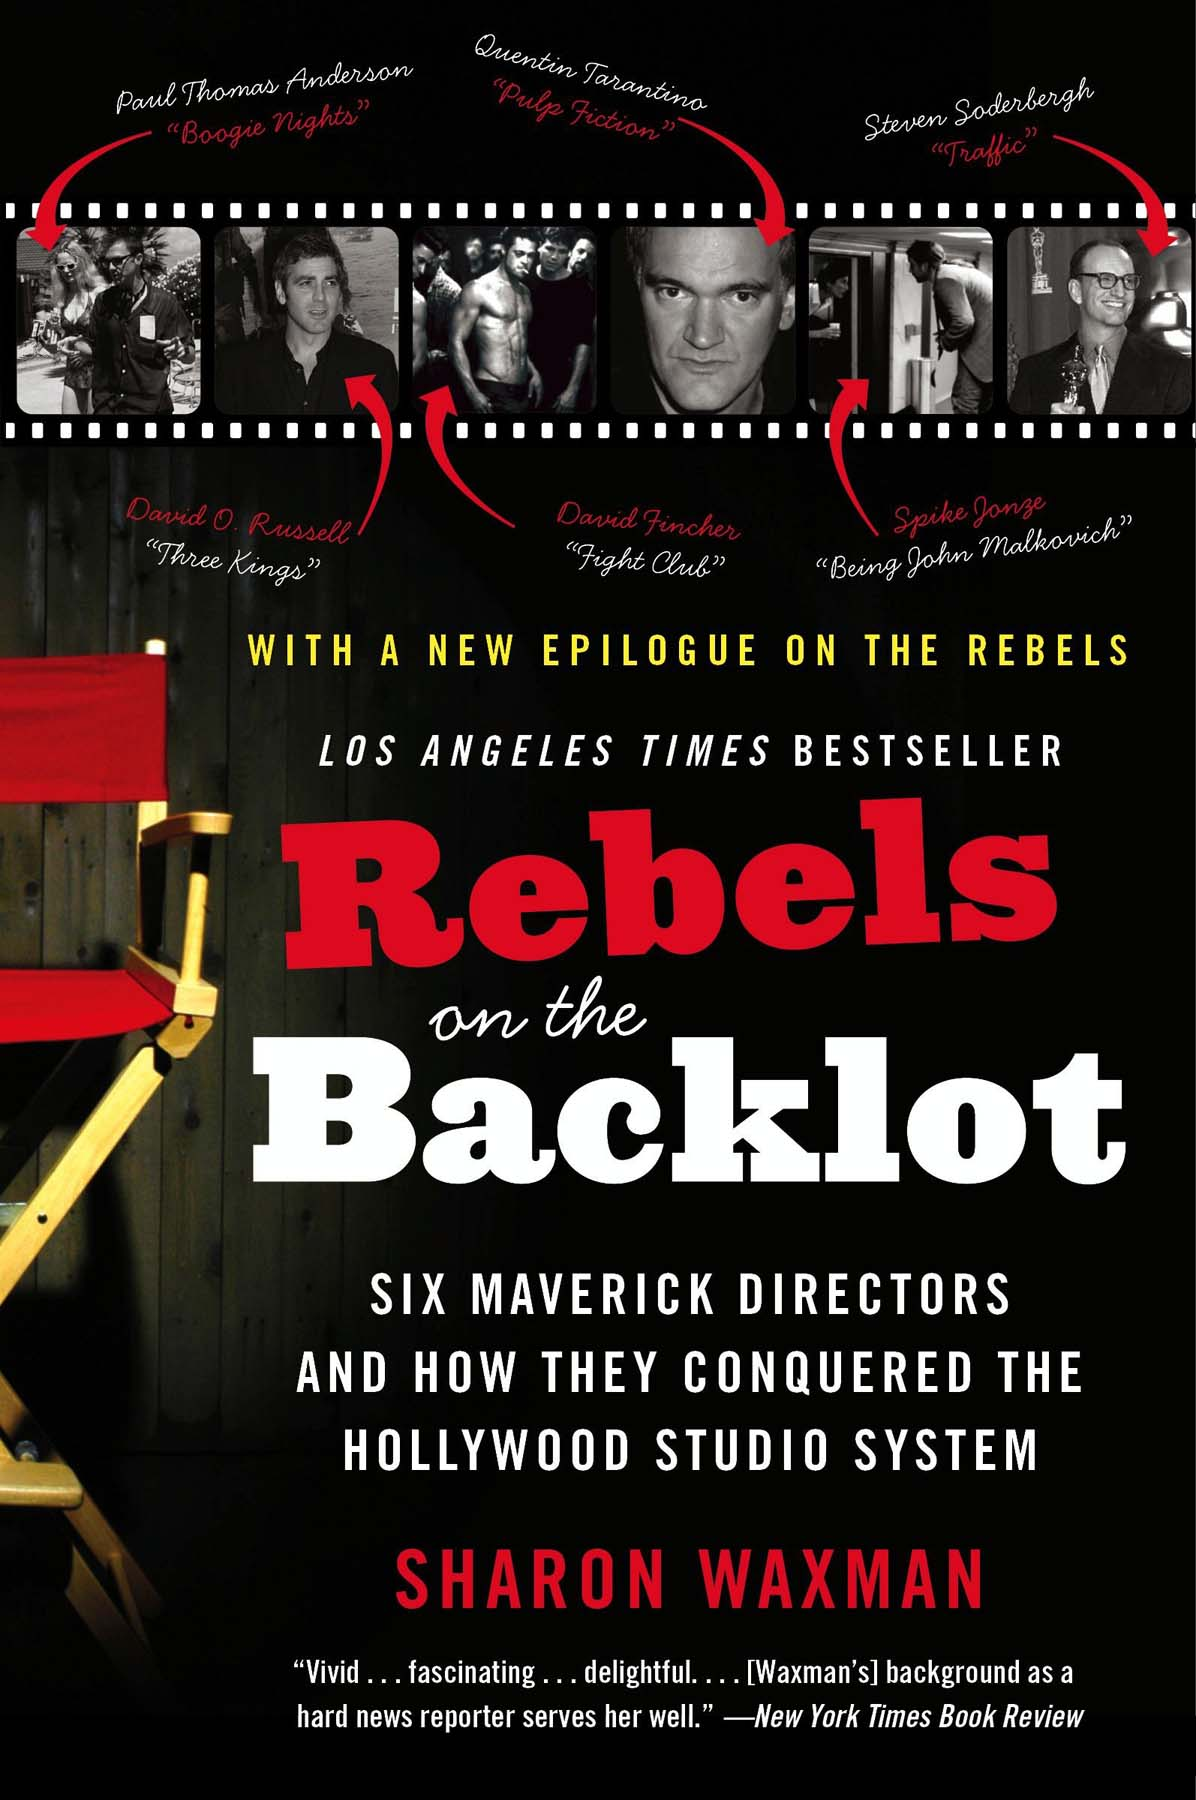 rebels-on-the-backlot-six-maverick-directors-and-how-they-conquered-the-hollywood-studio-system-p.s_9940801